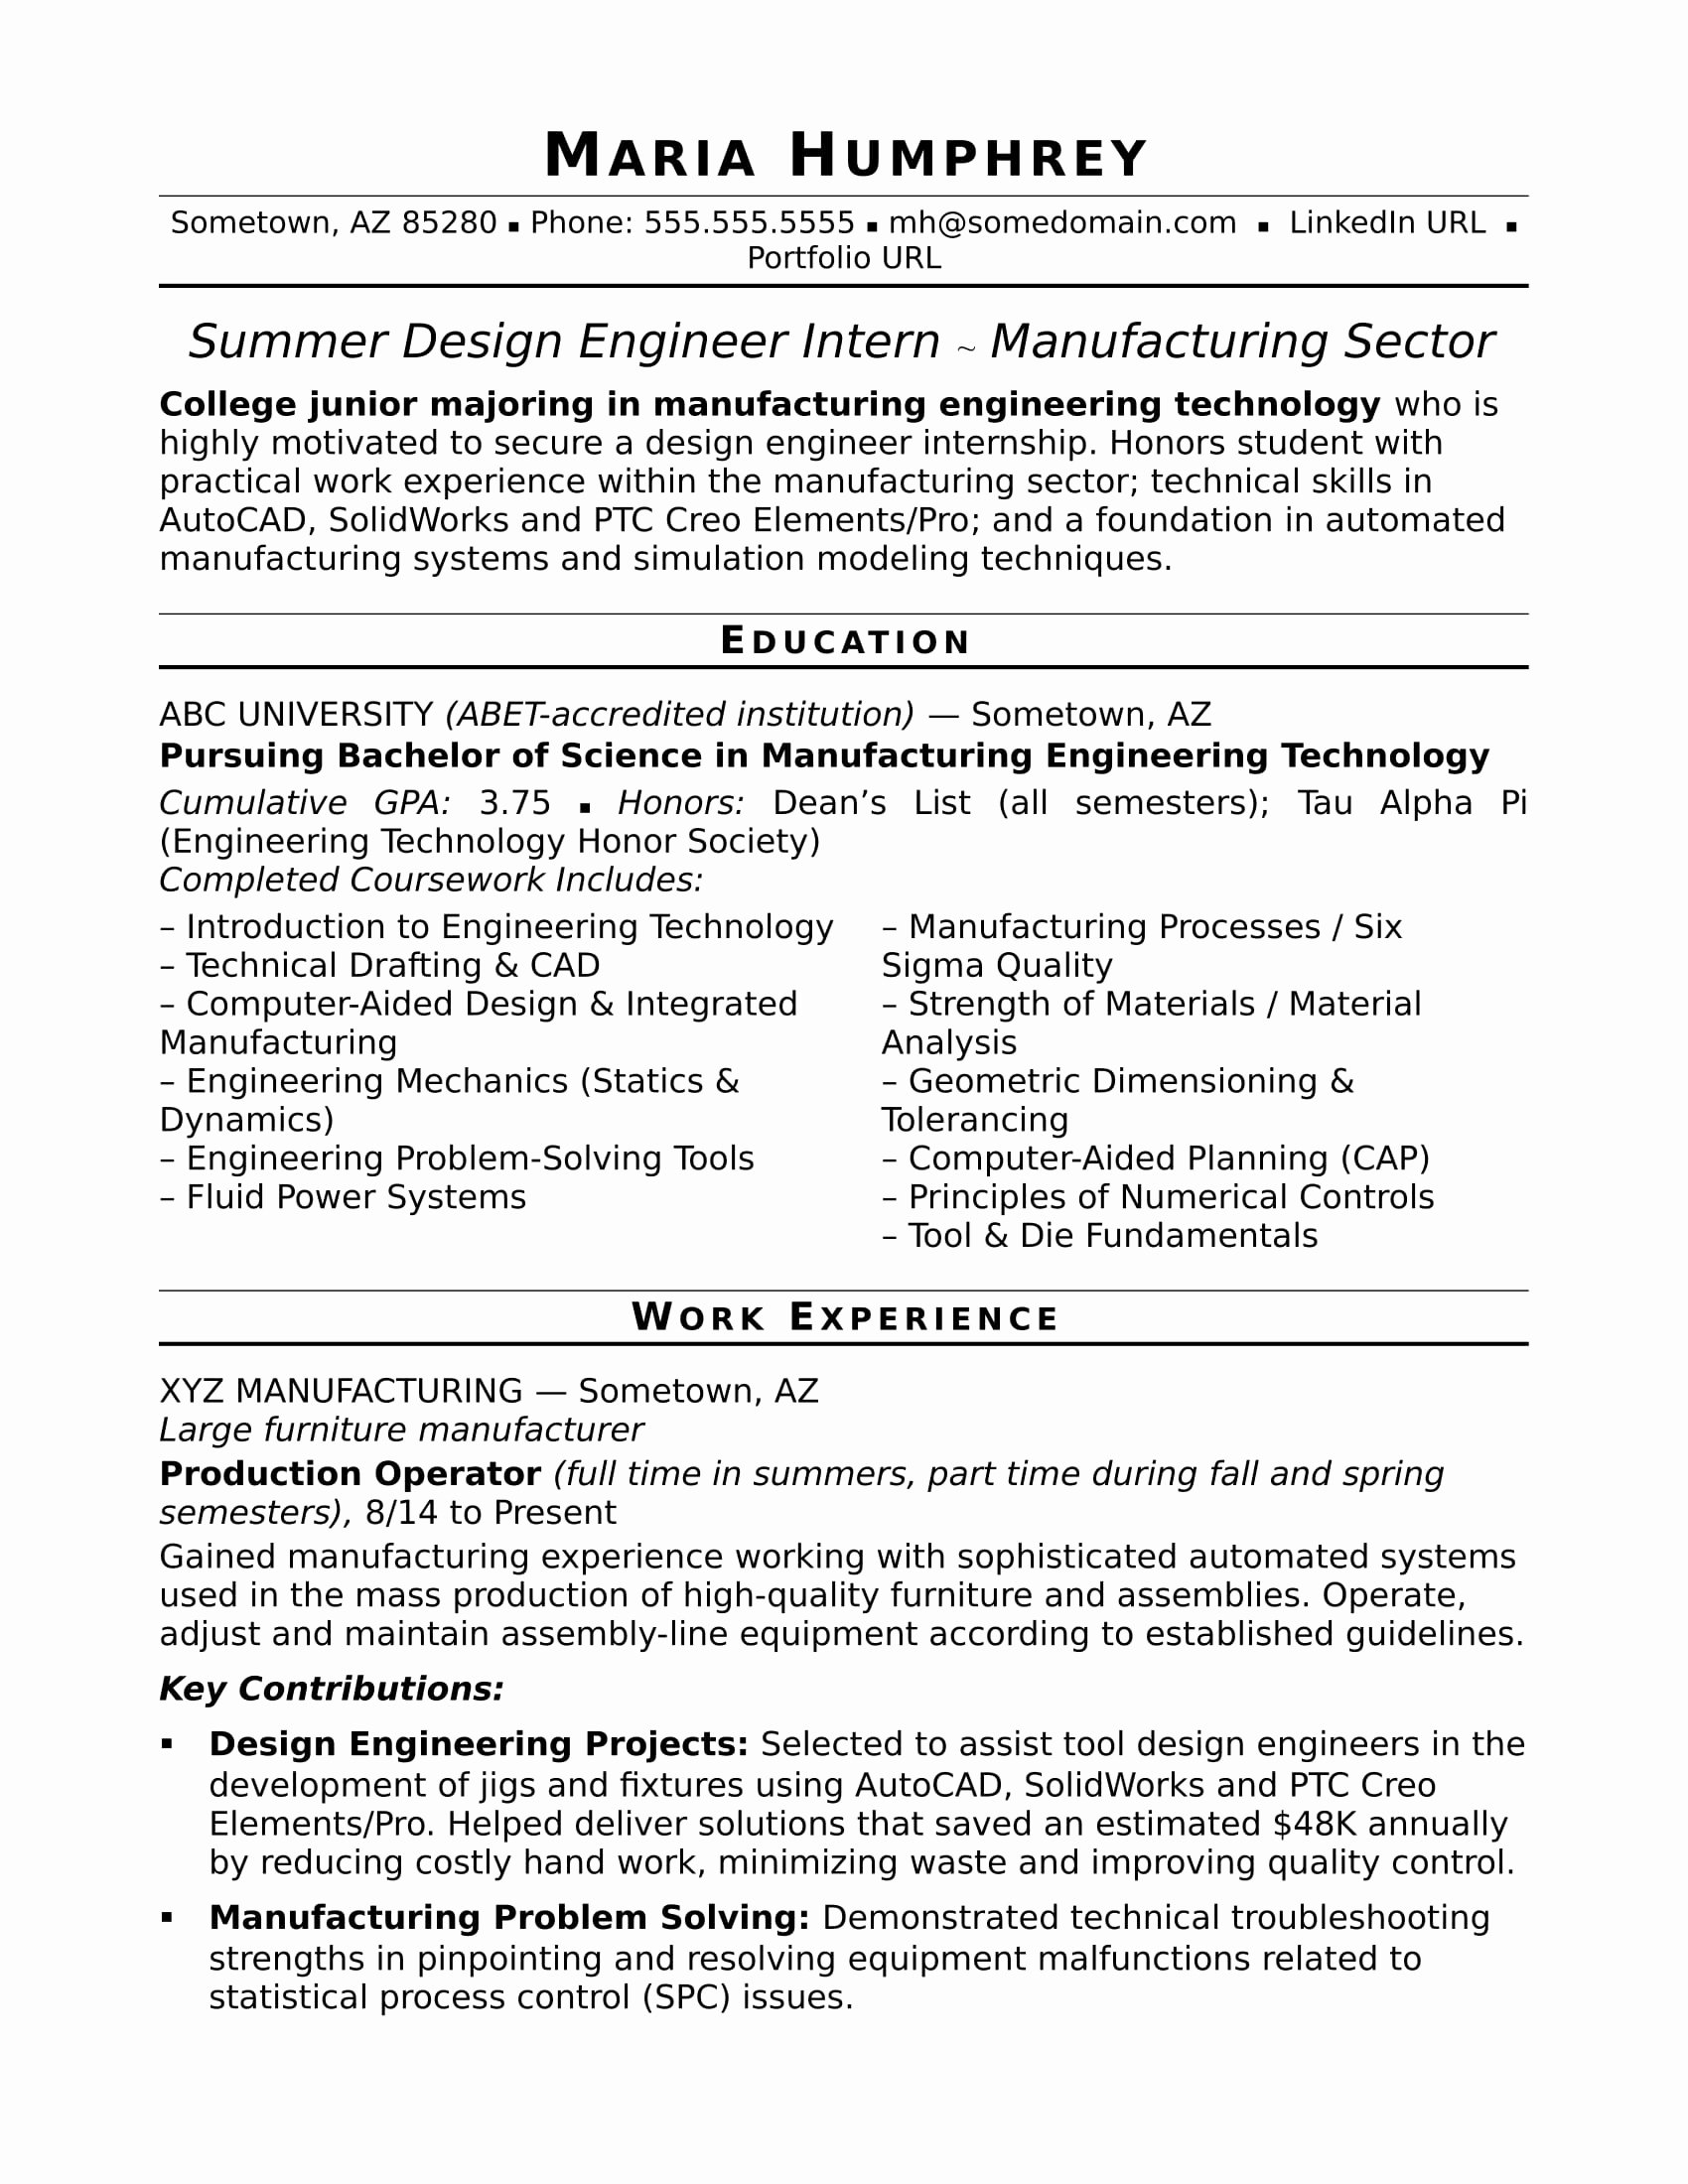 Graduated with Honors Resume Inspirational Sample Resume for An Entry Level Design Engineer